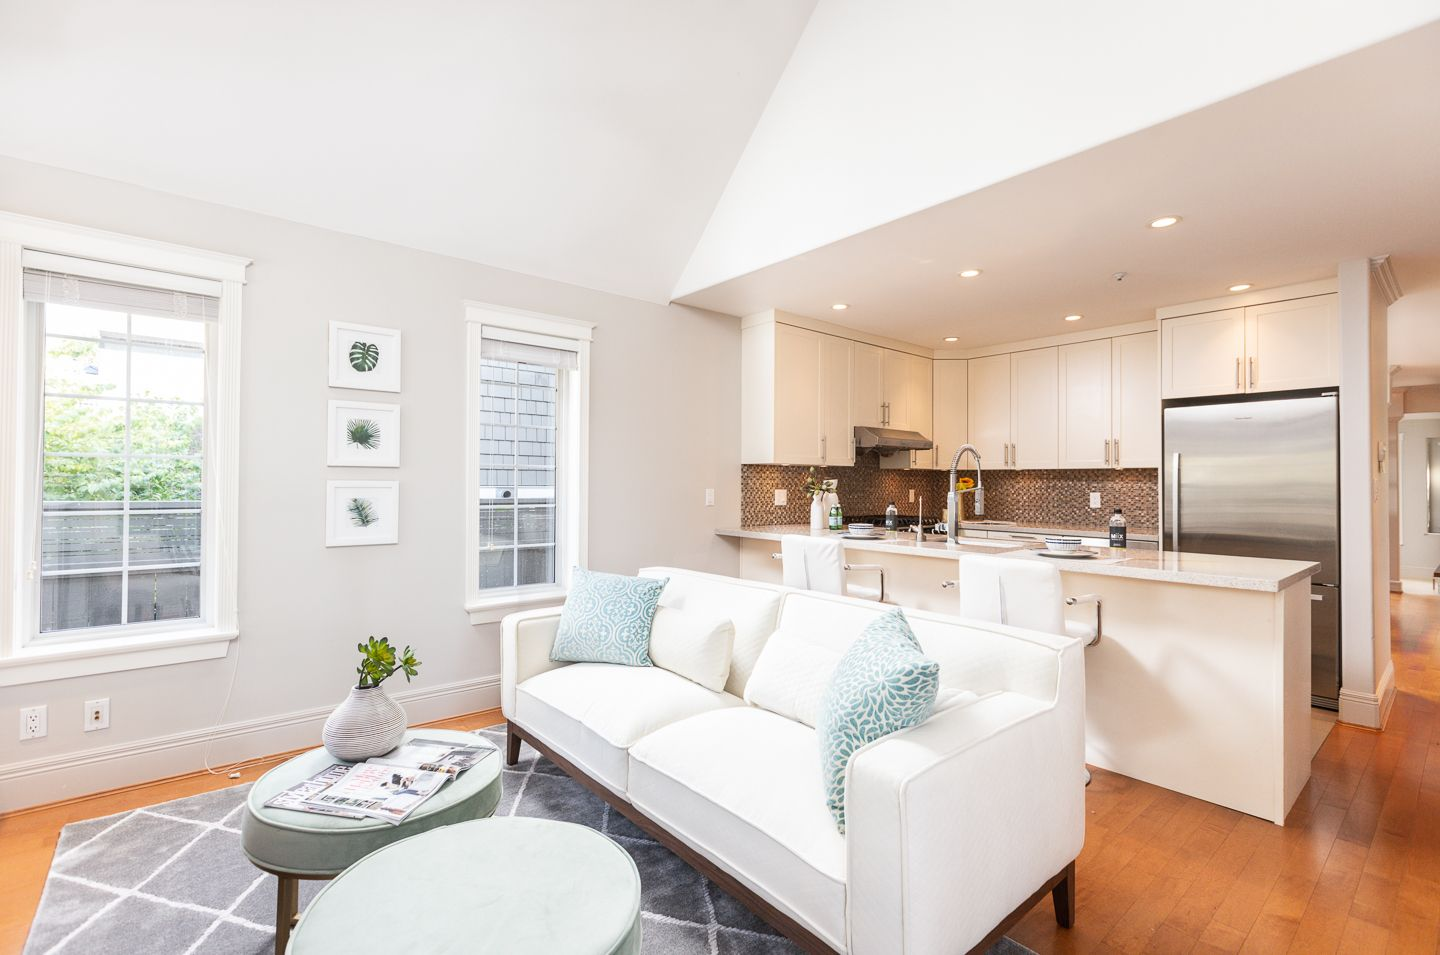 Photo 10: Photos: 2267 WEST 13TH AV in VANCOUVER: Kitsilano 1/2 Duplex for sale (Vancouver West)  : MLS®# R2407976